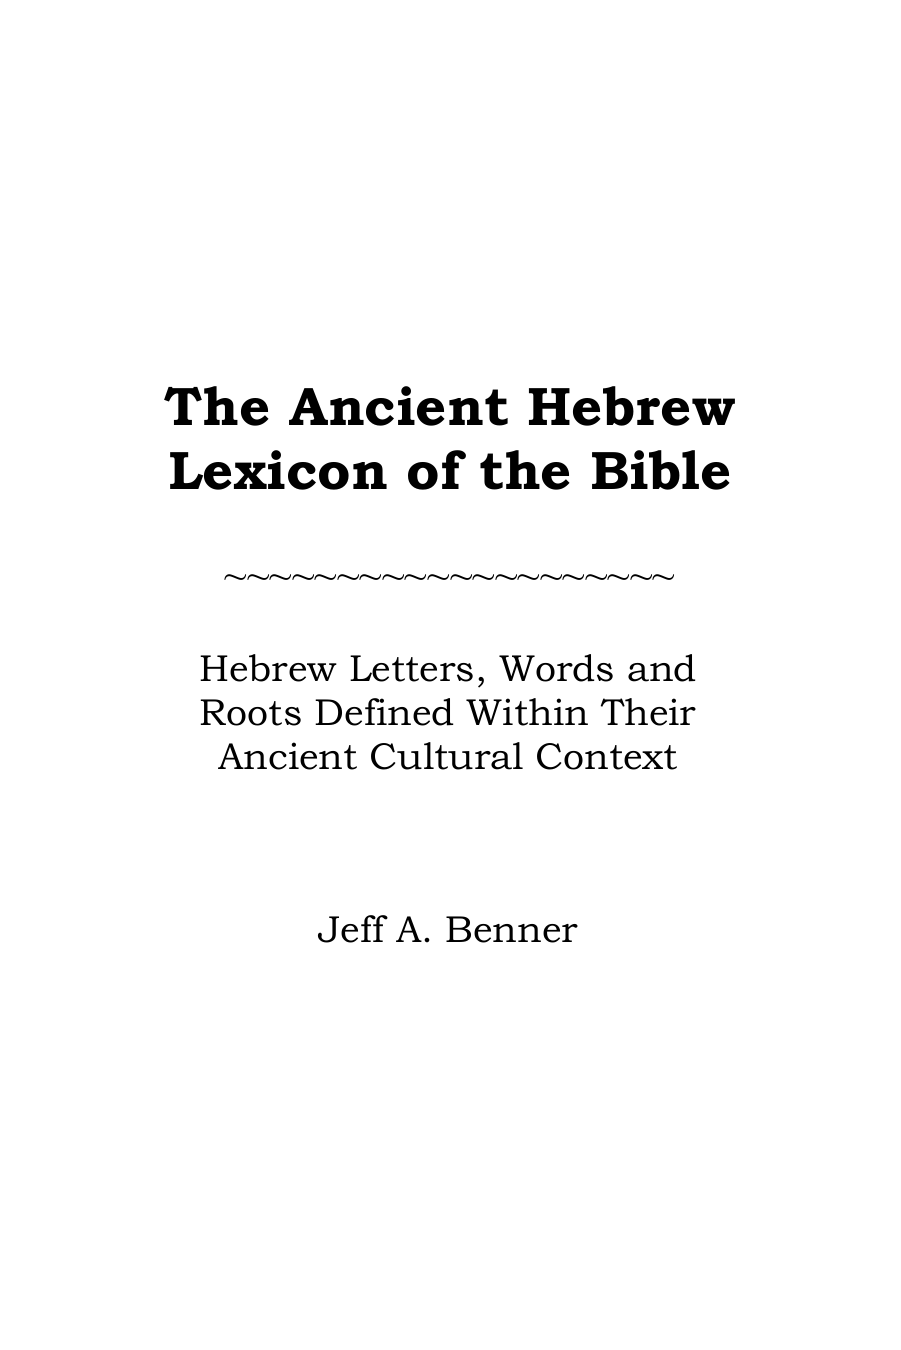 Picture of: The Ancient Hebrew Lexicon Of The Bible